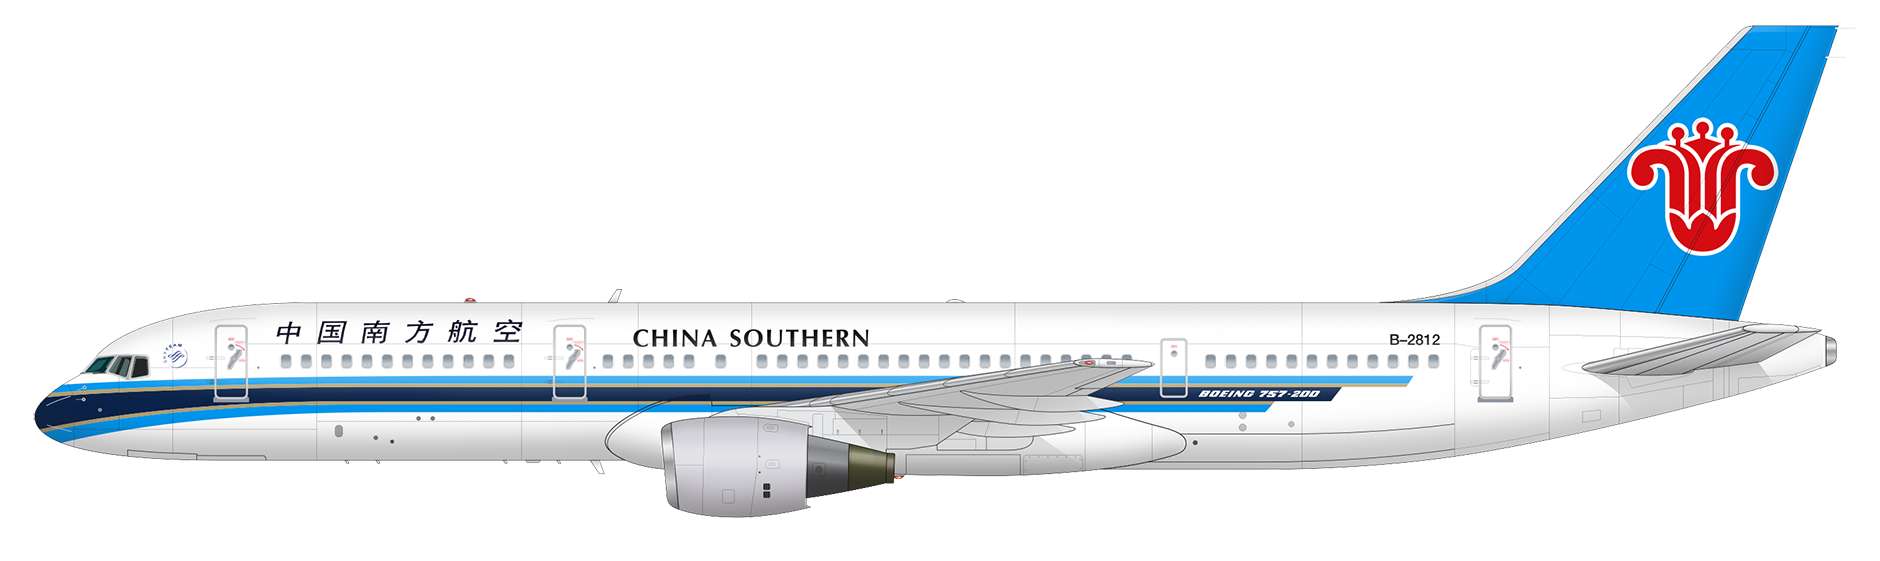 China Southern Airlines Boeing 737 Next Gen - B-1701 (MSN 41251)